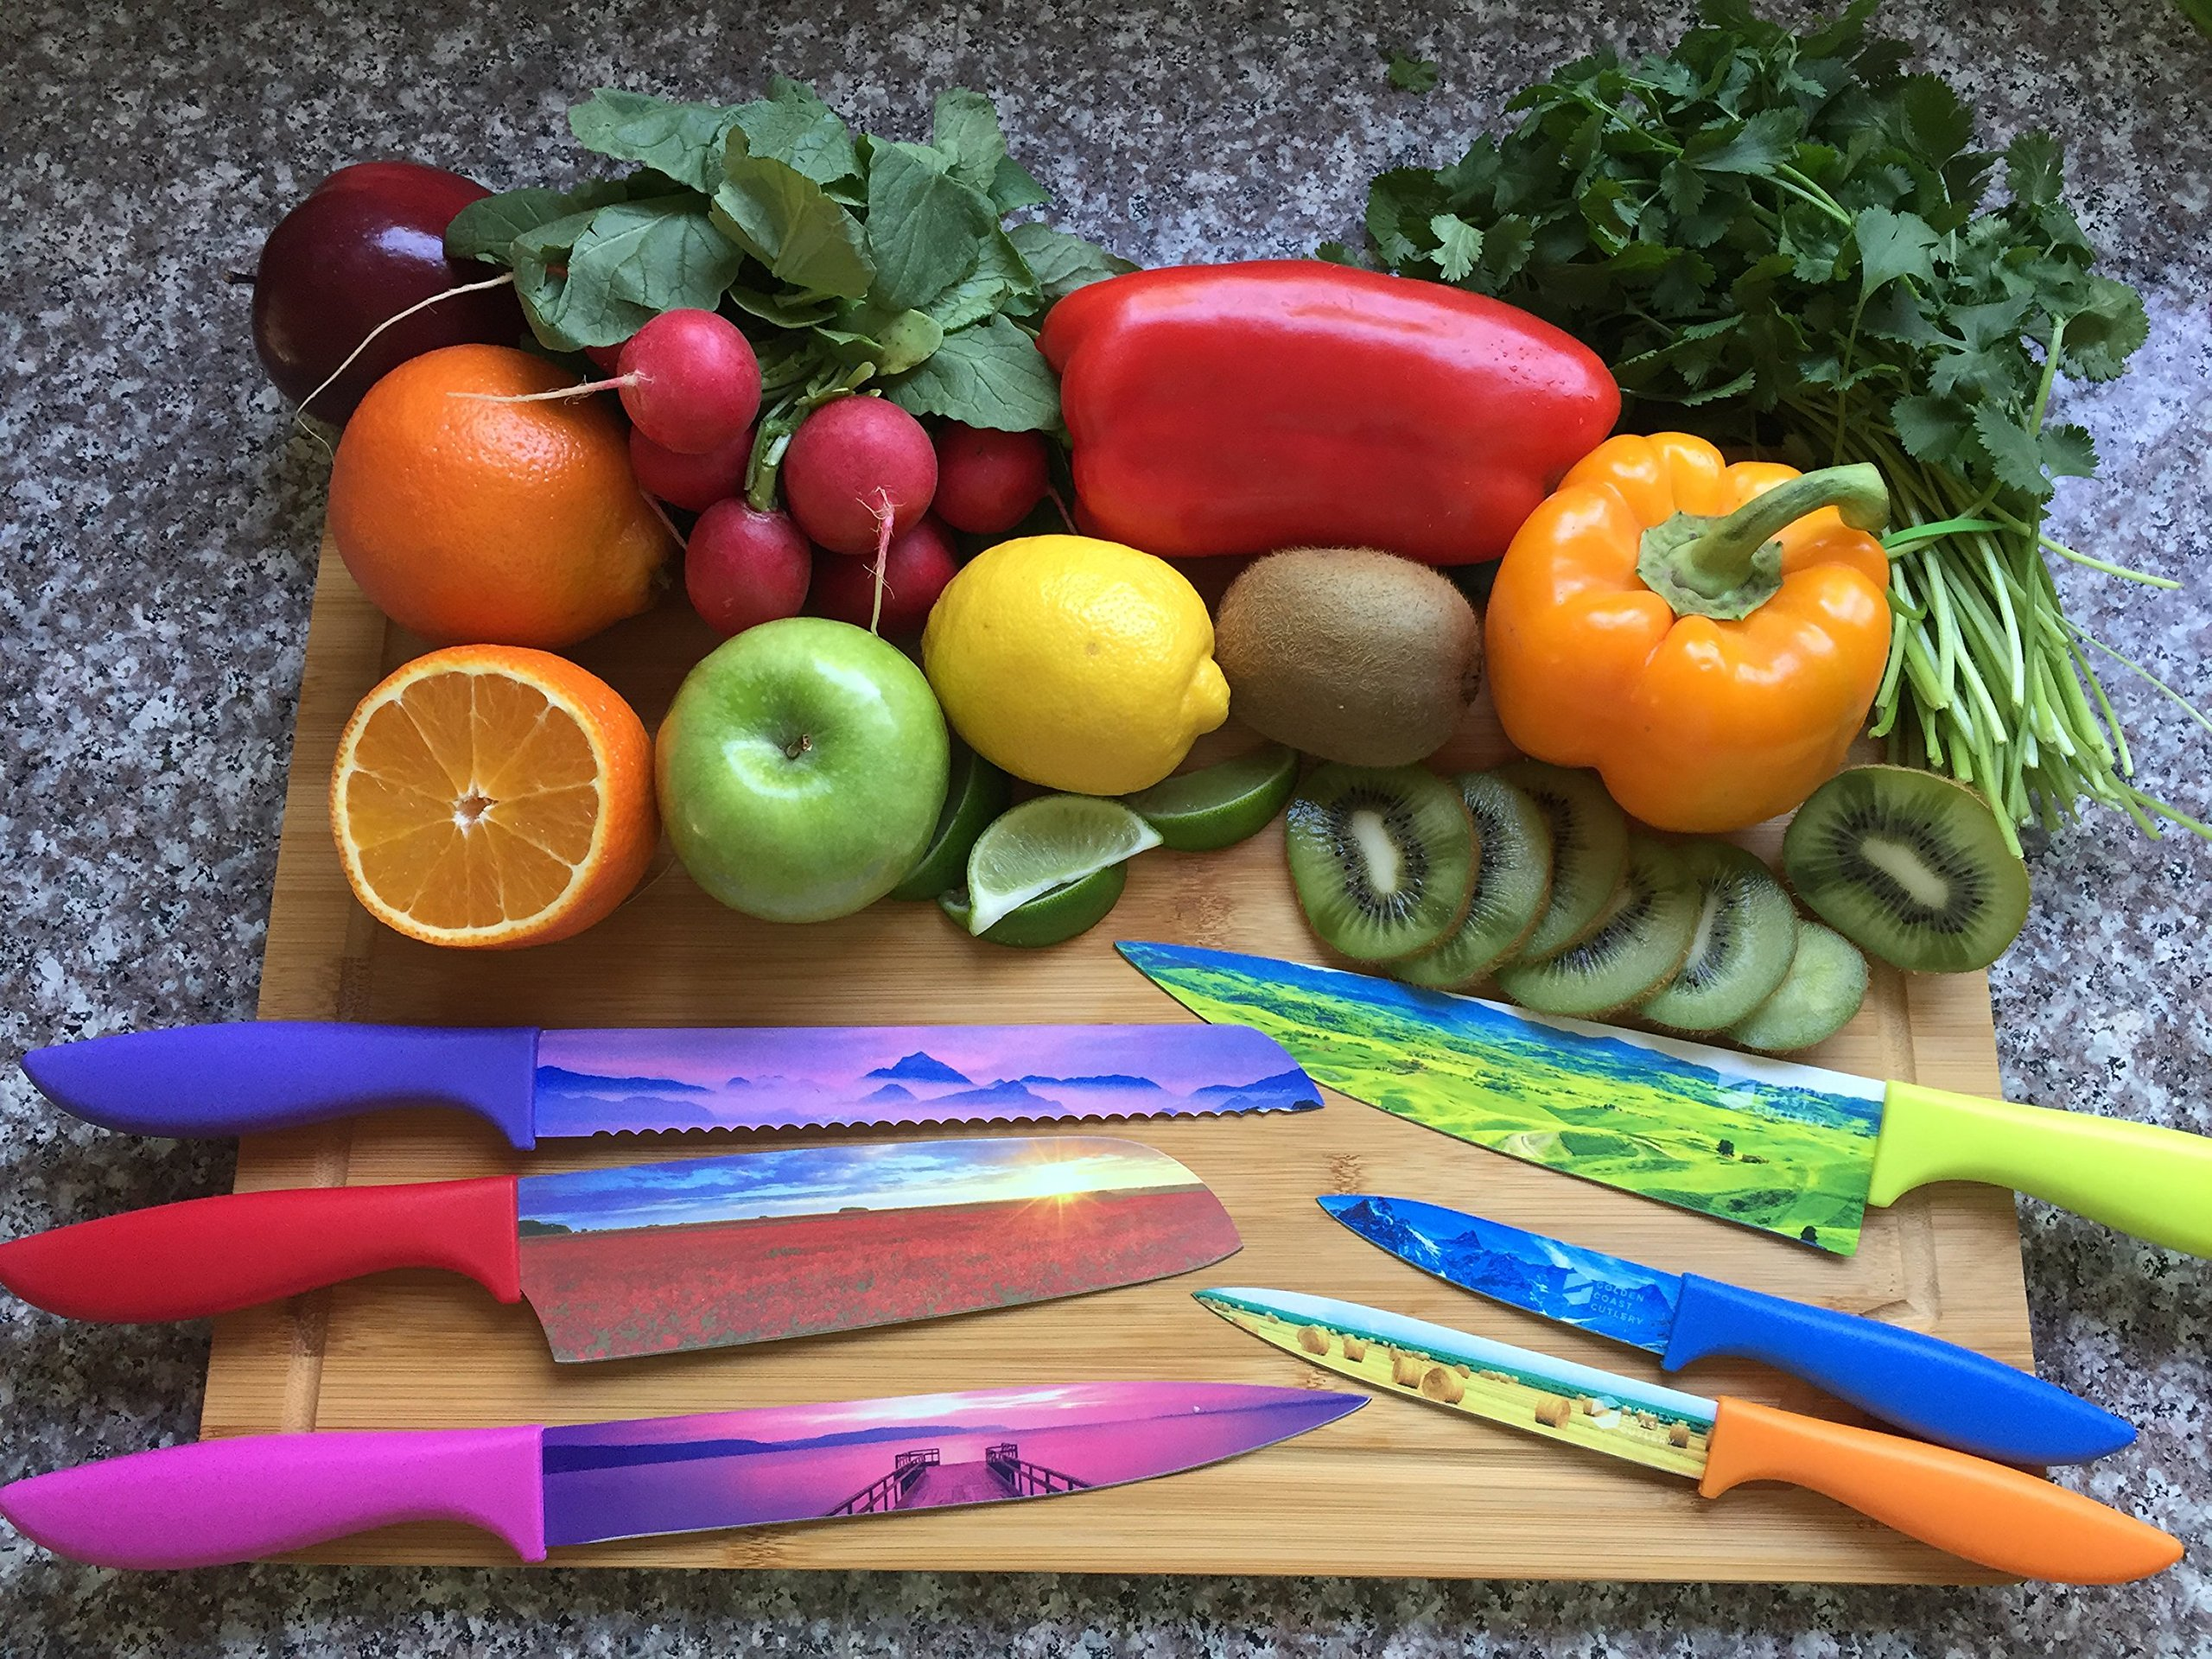 Set of 6 Landscape Kitchen Chef's Knives - Beautifully Designed Razor-Sharp Premium Gift Artisanal Cutlery Set With Non-Stick Surface Finish - By Golden Coast Cutlery by Golden Coast Cutlery (Image #2)